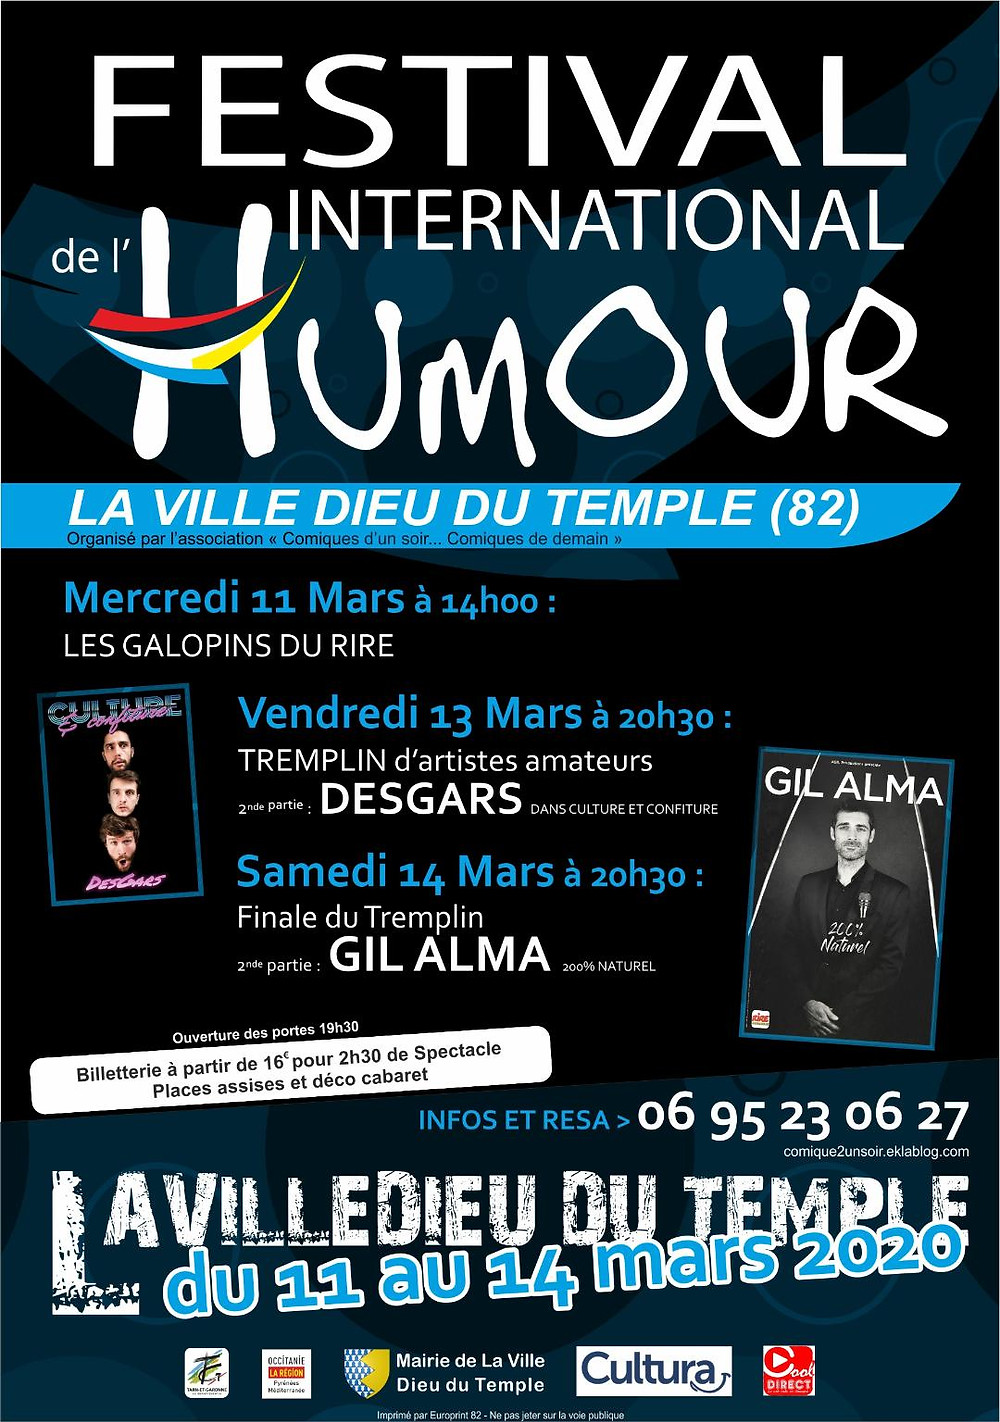 Festival International de l'Humour de Ville Dieu Du Temple